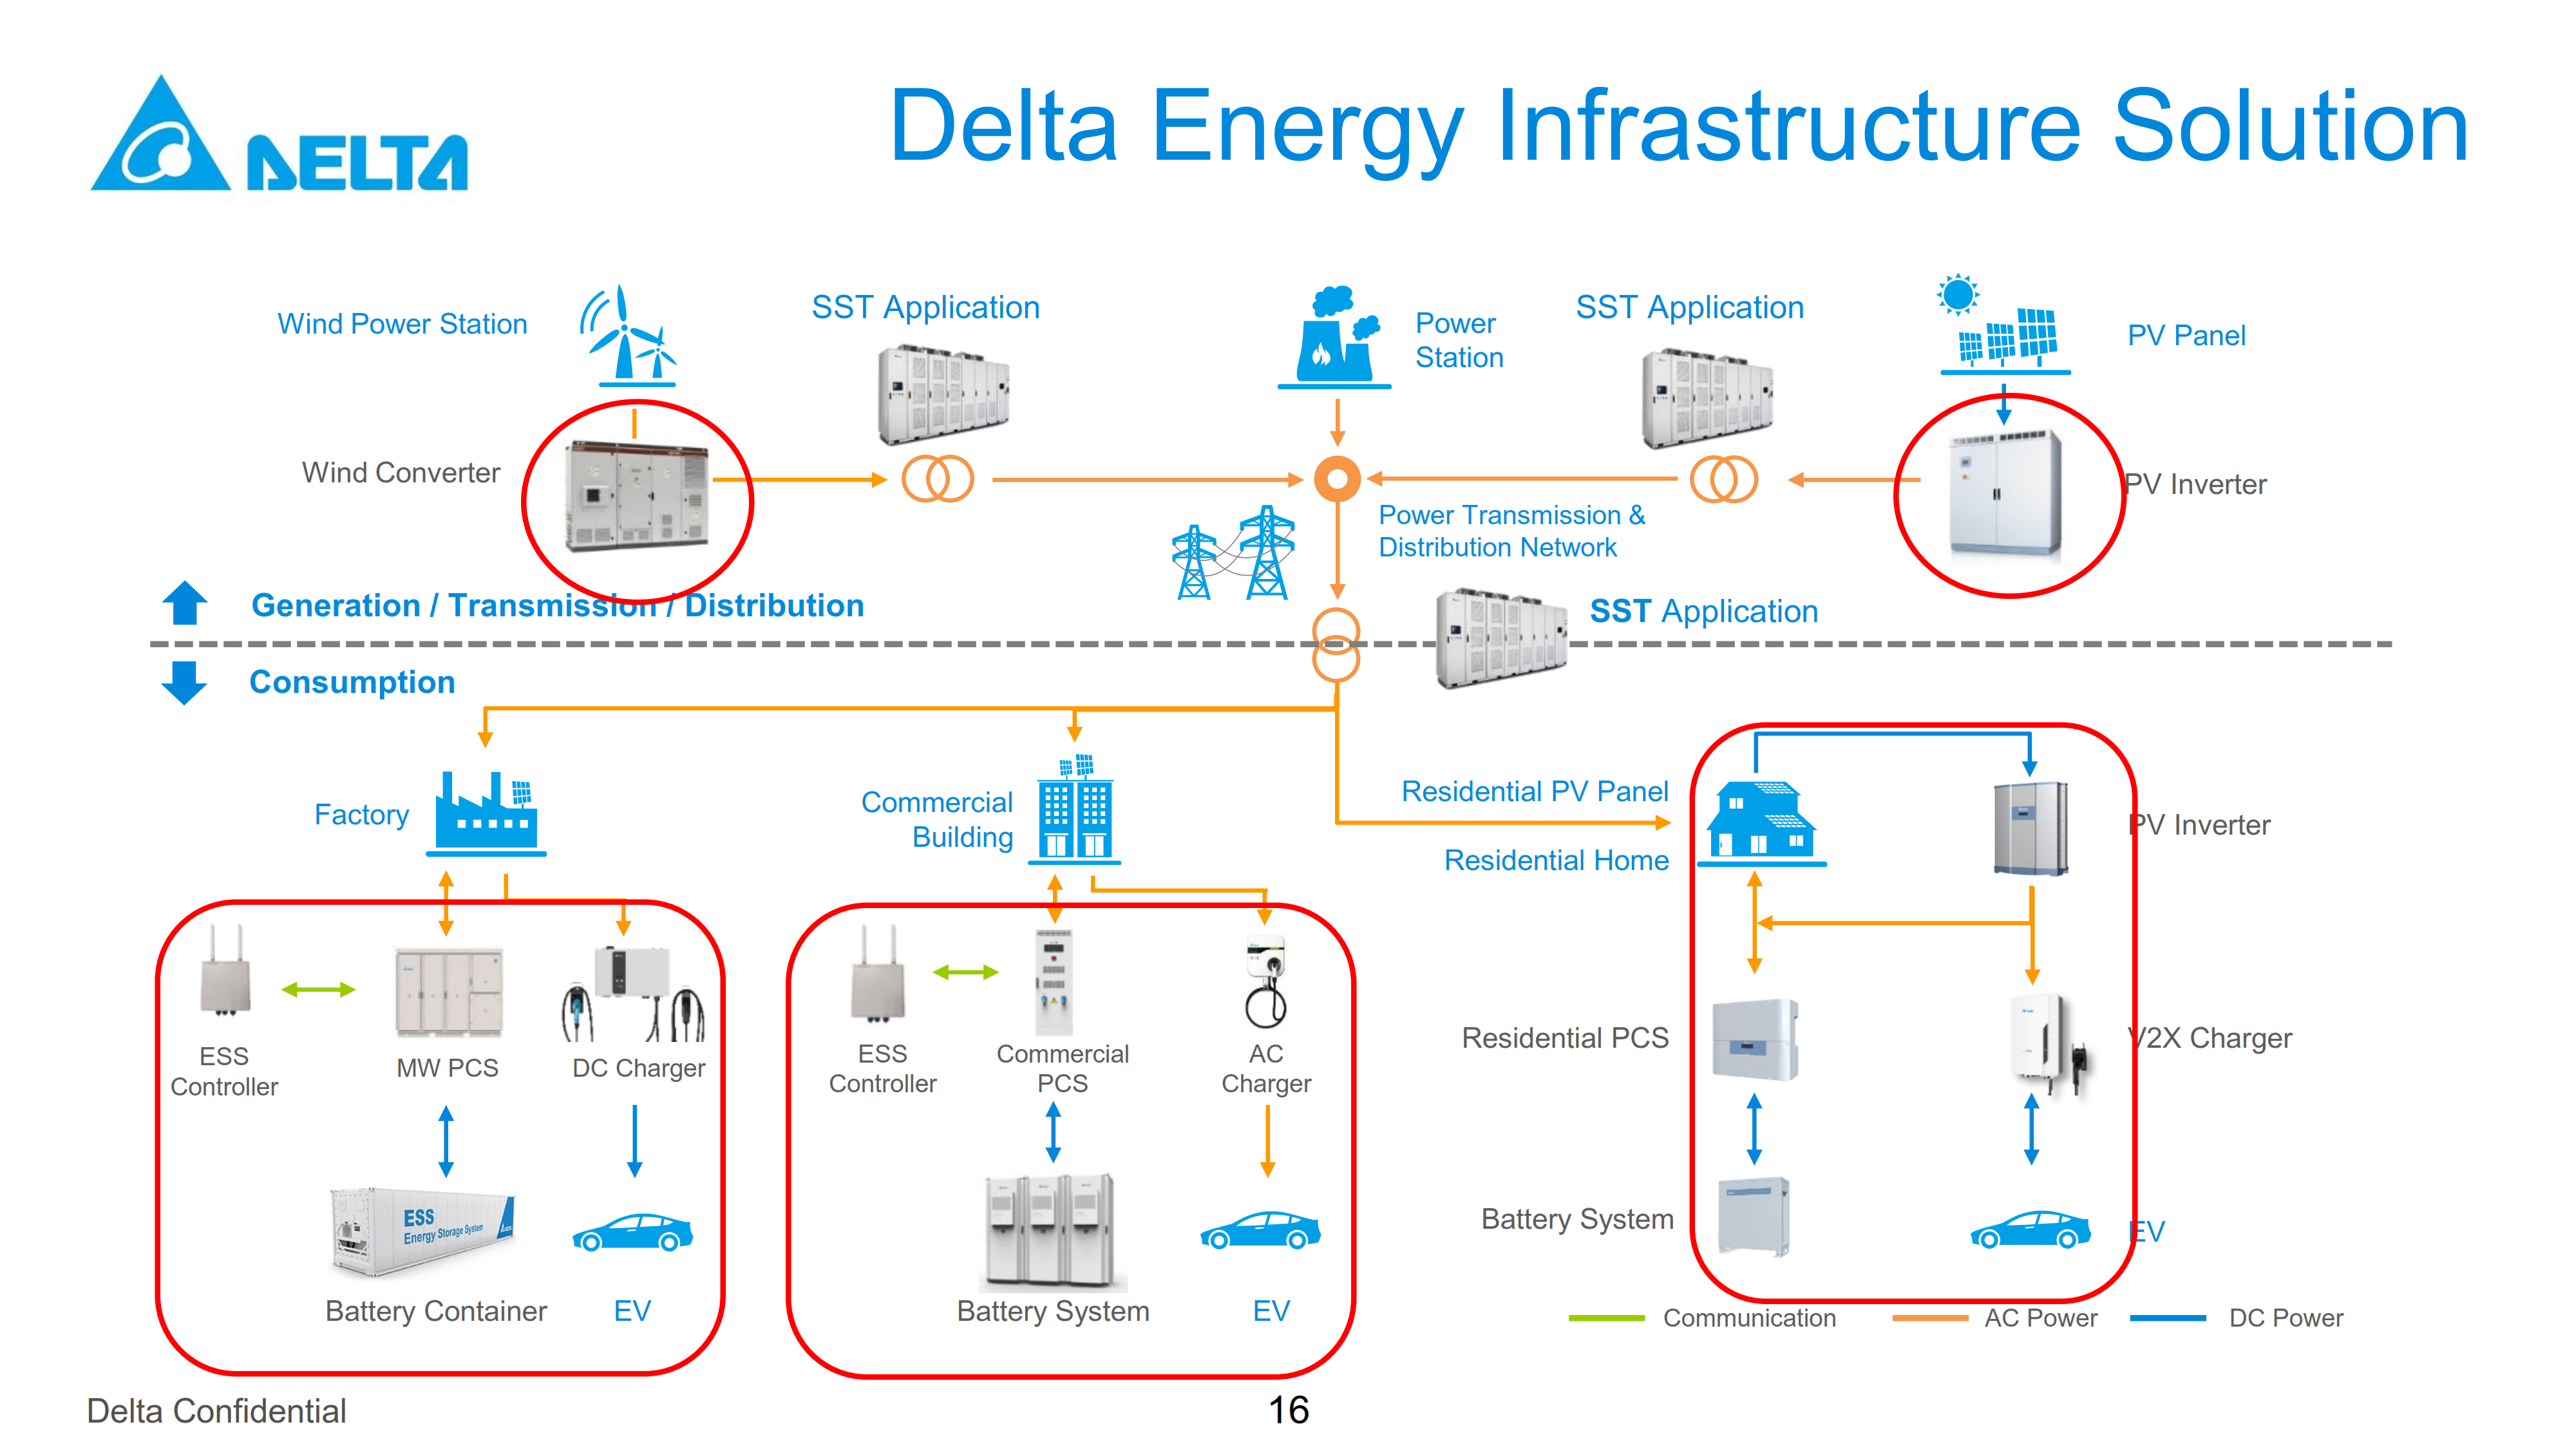 Delta Energy Infrastructure solution